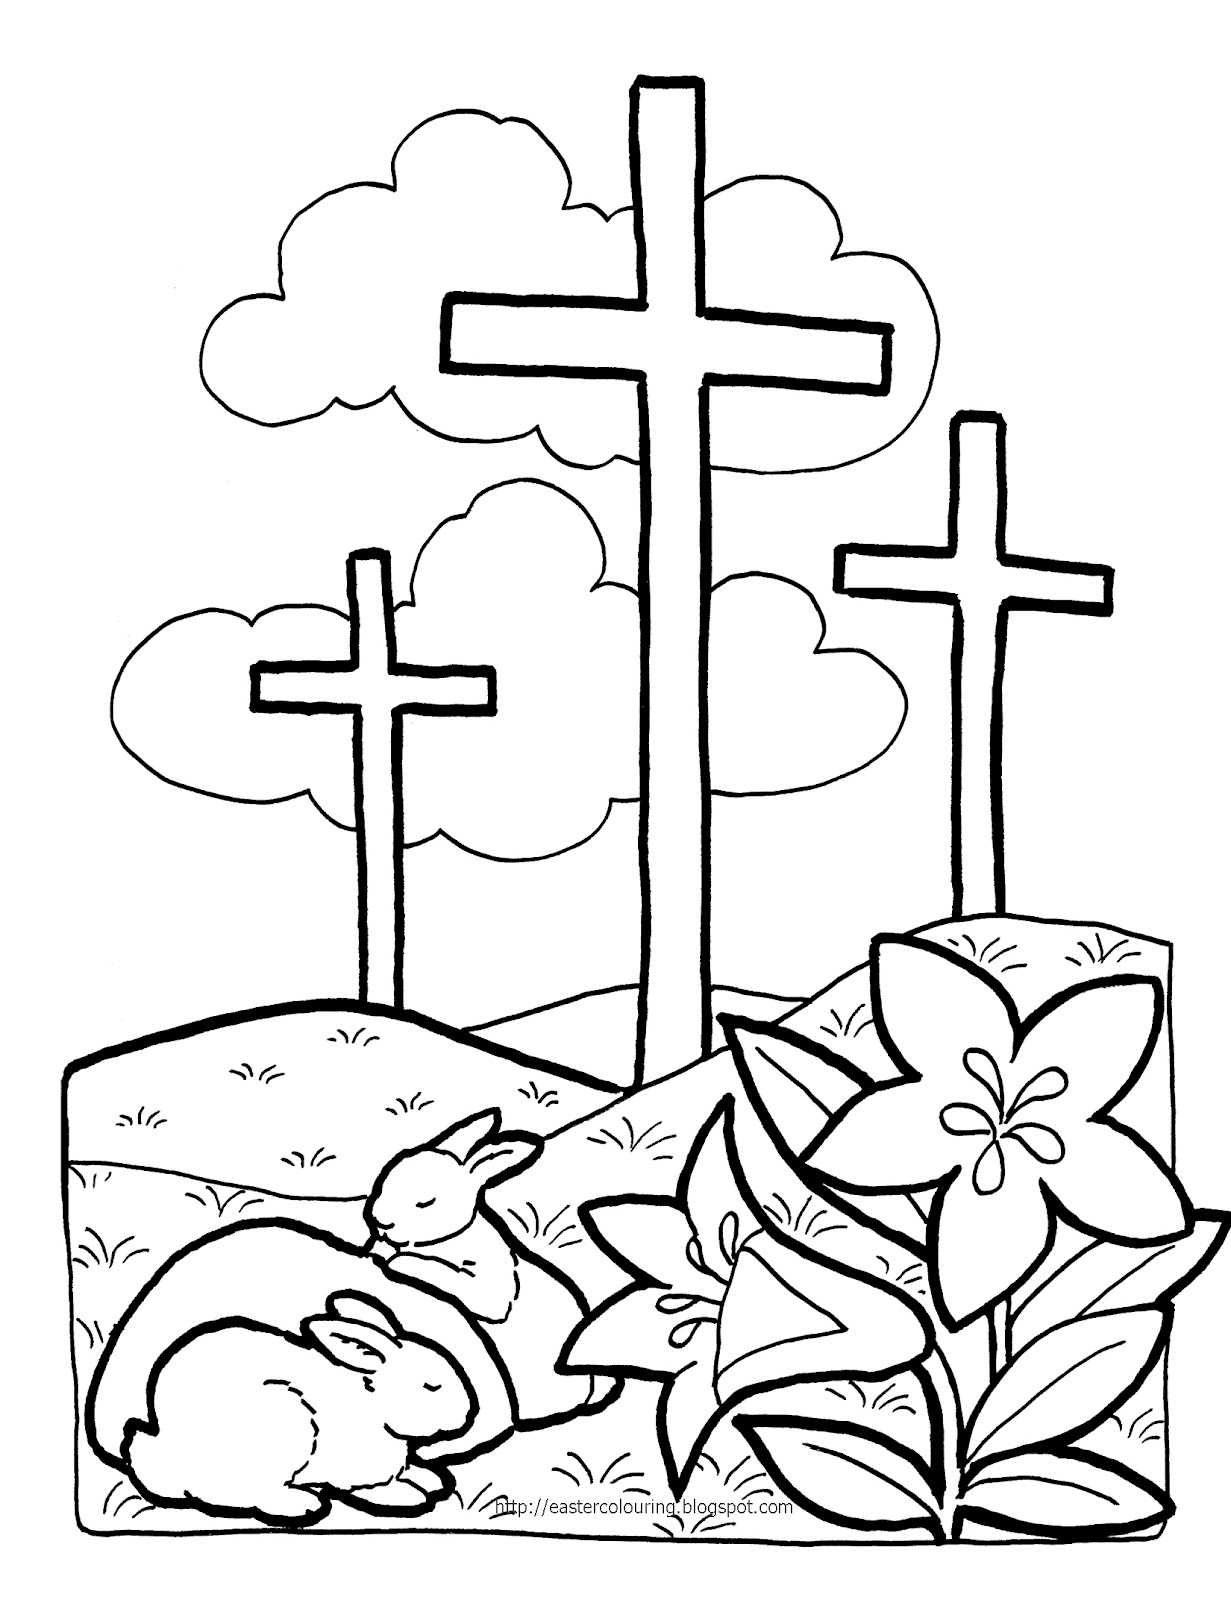 printable christian coloring pages - Christian Coloring Pages Free